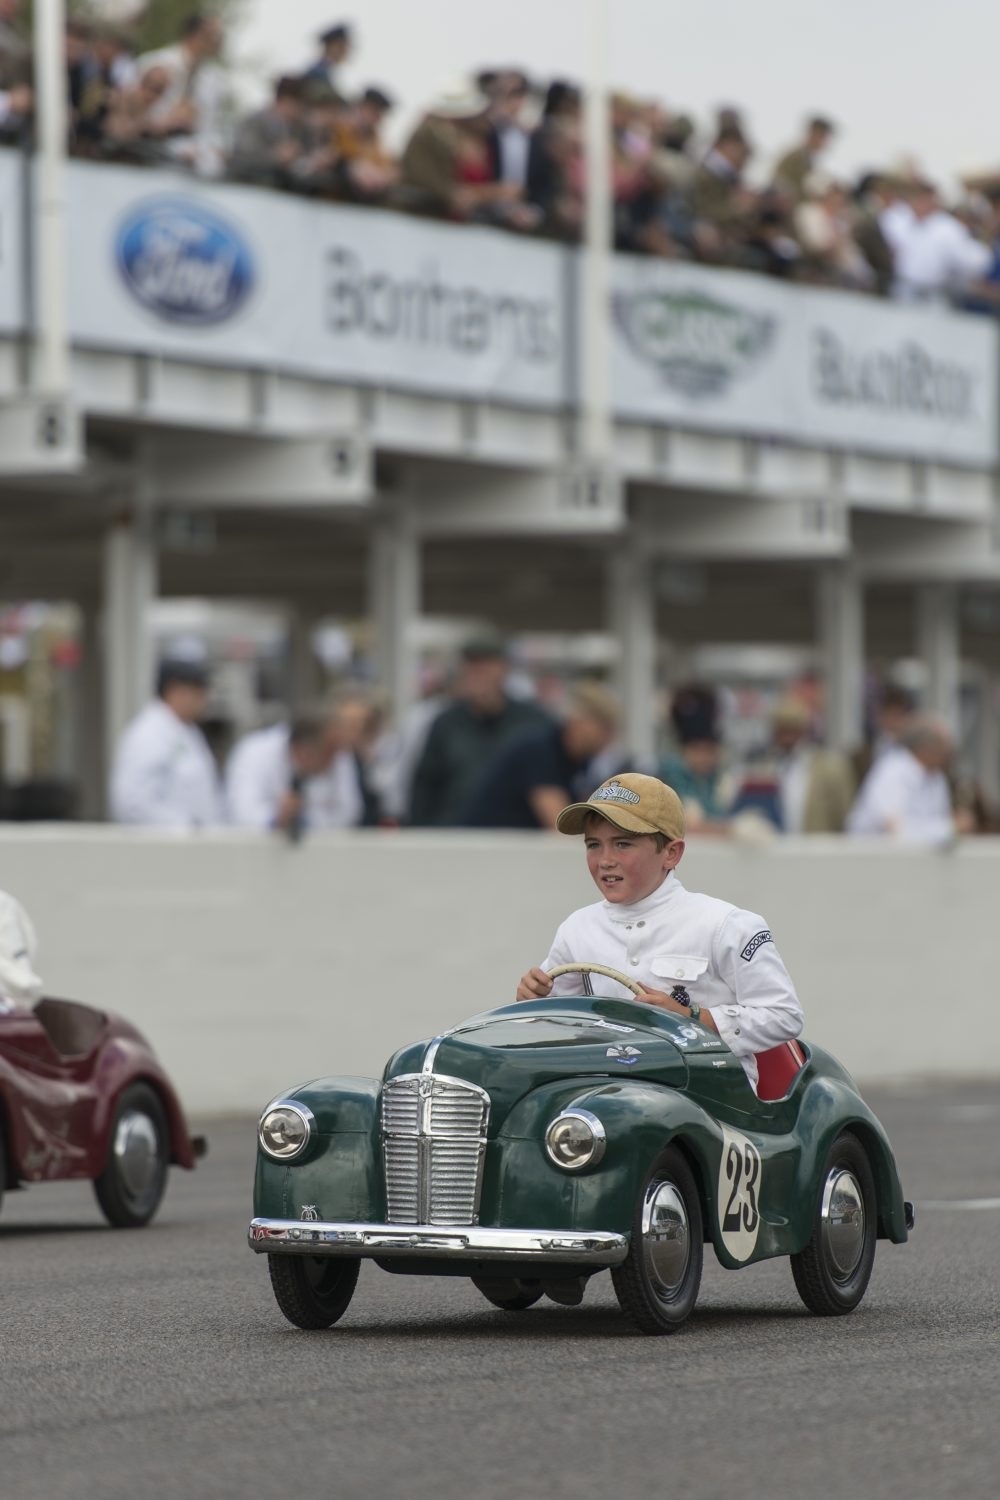 the settrington cup is where the kids get to race at goodwood